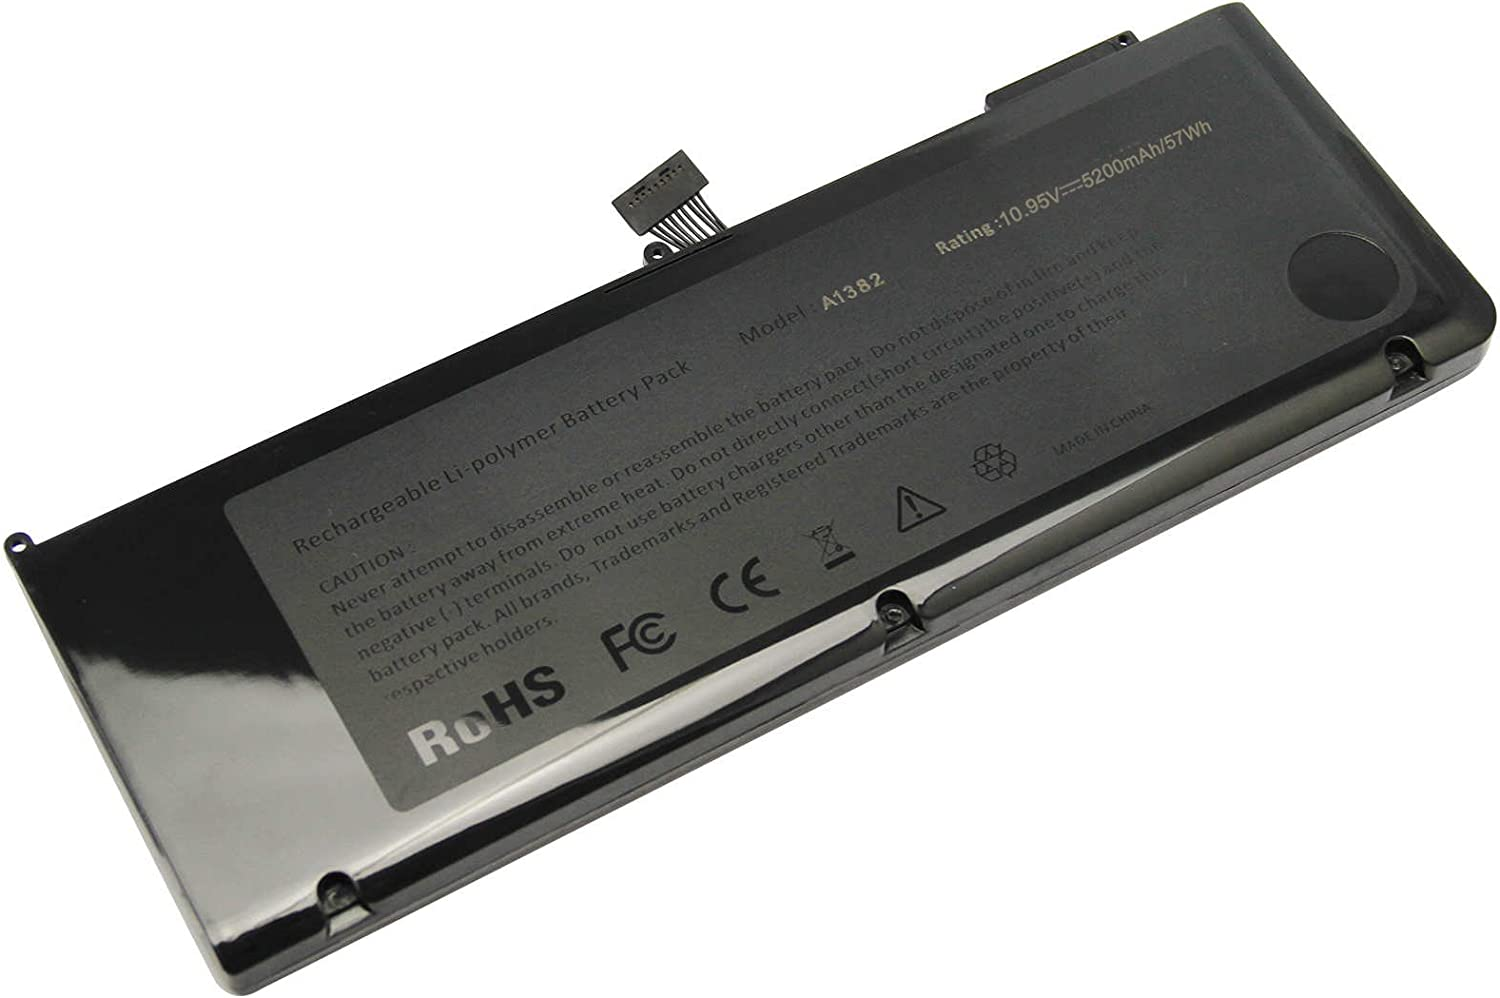 Early 2011 Late 2011 Mid 2012 Version ARyee 10.95V A1382 Battery Compatible with Apple Macbook Pro 15 A1382 A1286 020-7134-01 020-7134-A 661-5844 661-5211 661-5476